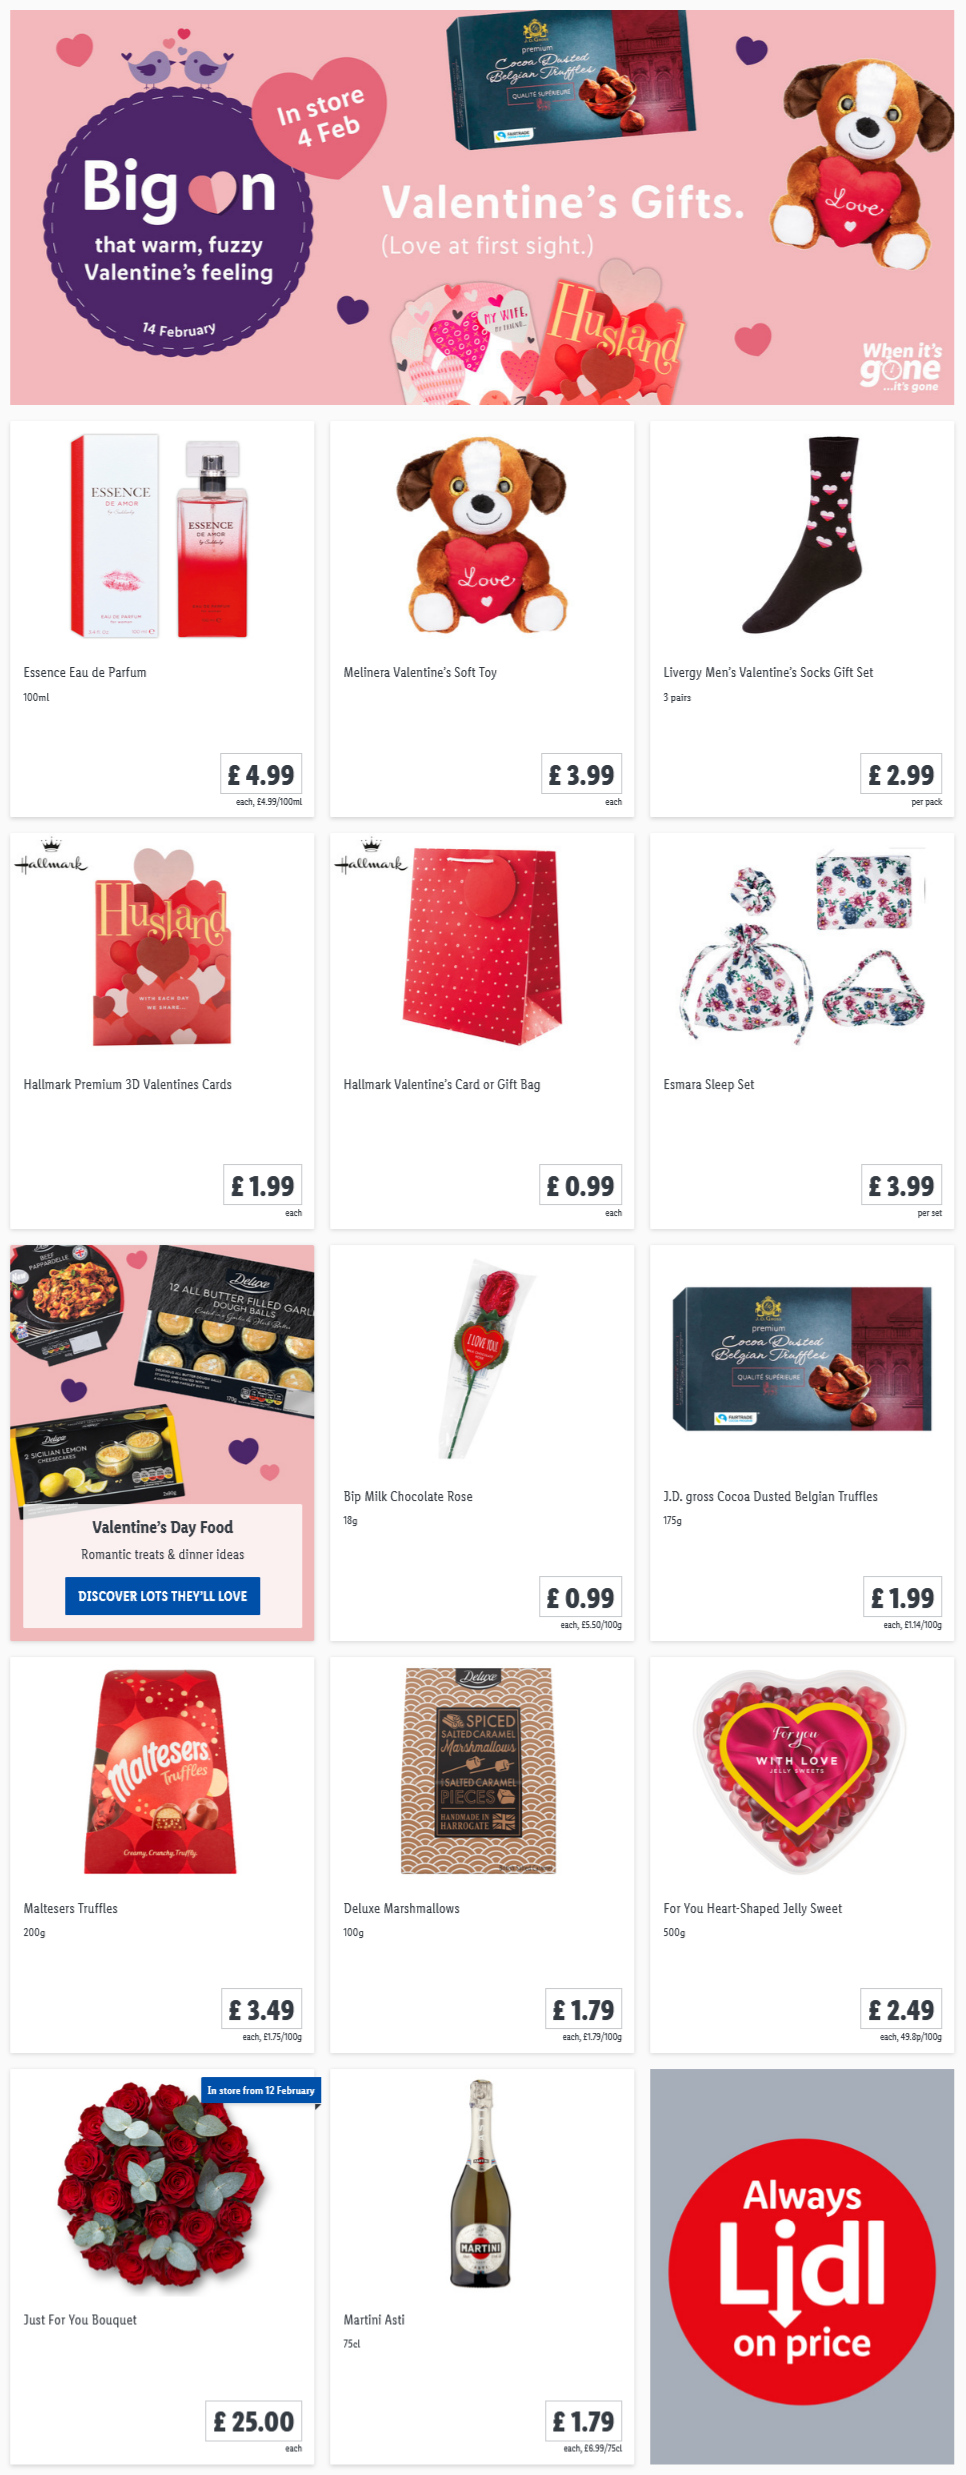 Lidl Valentine's Gifts Offers from Thursday, 4th February 2021